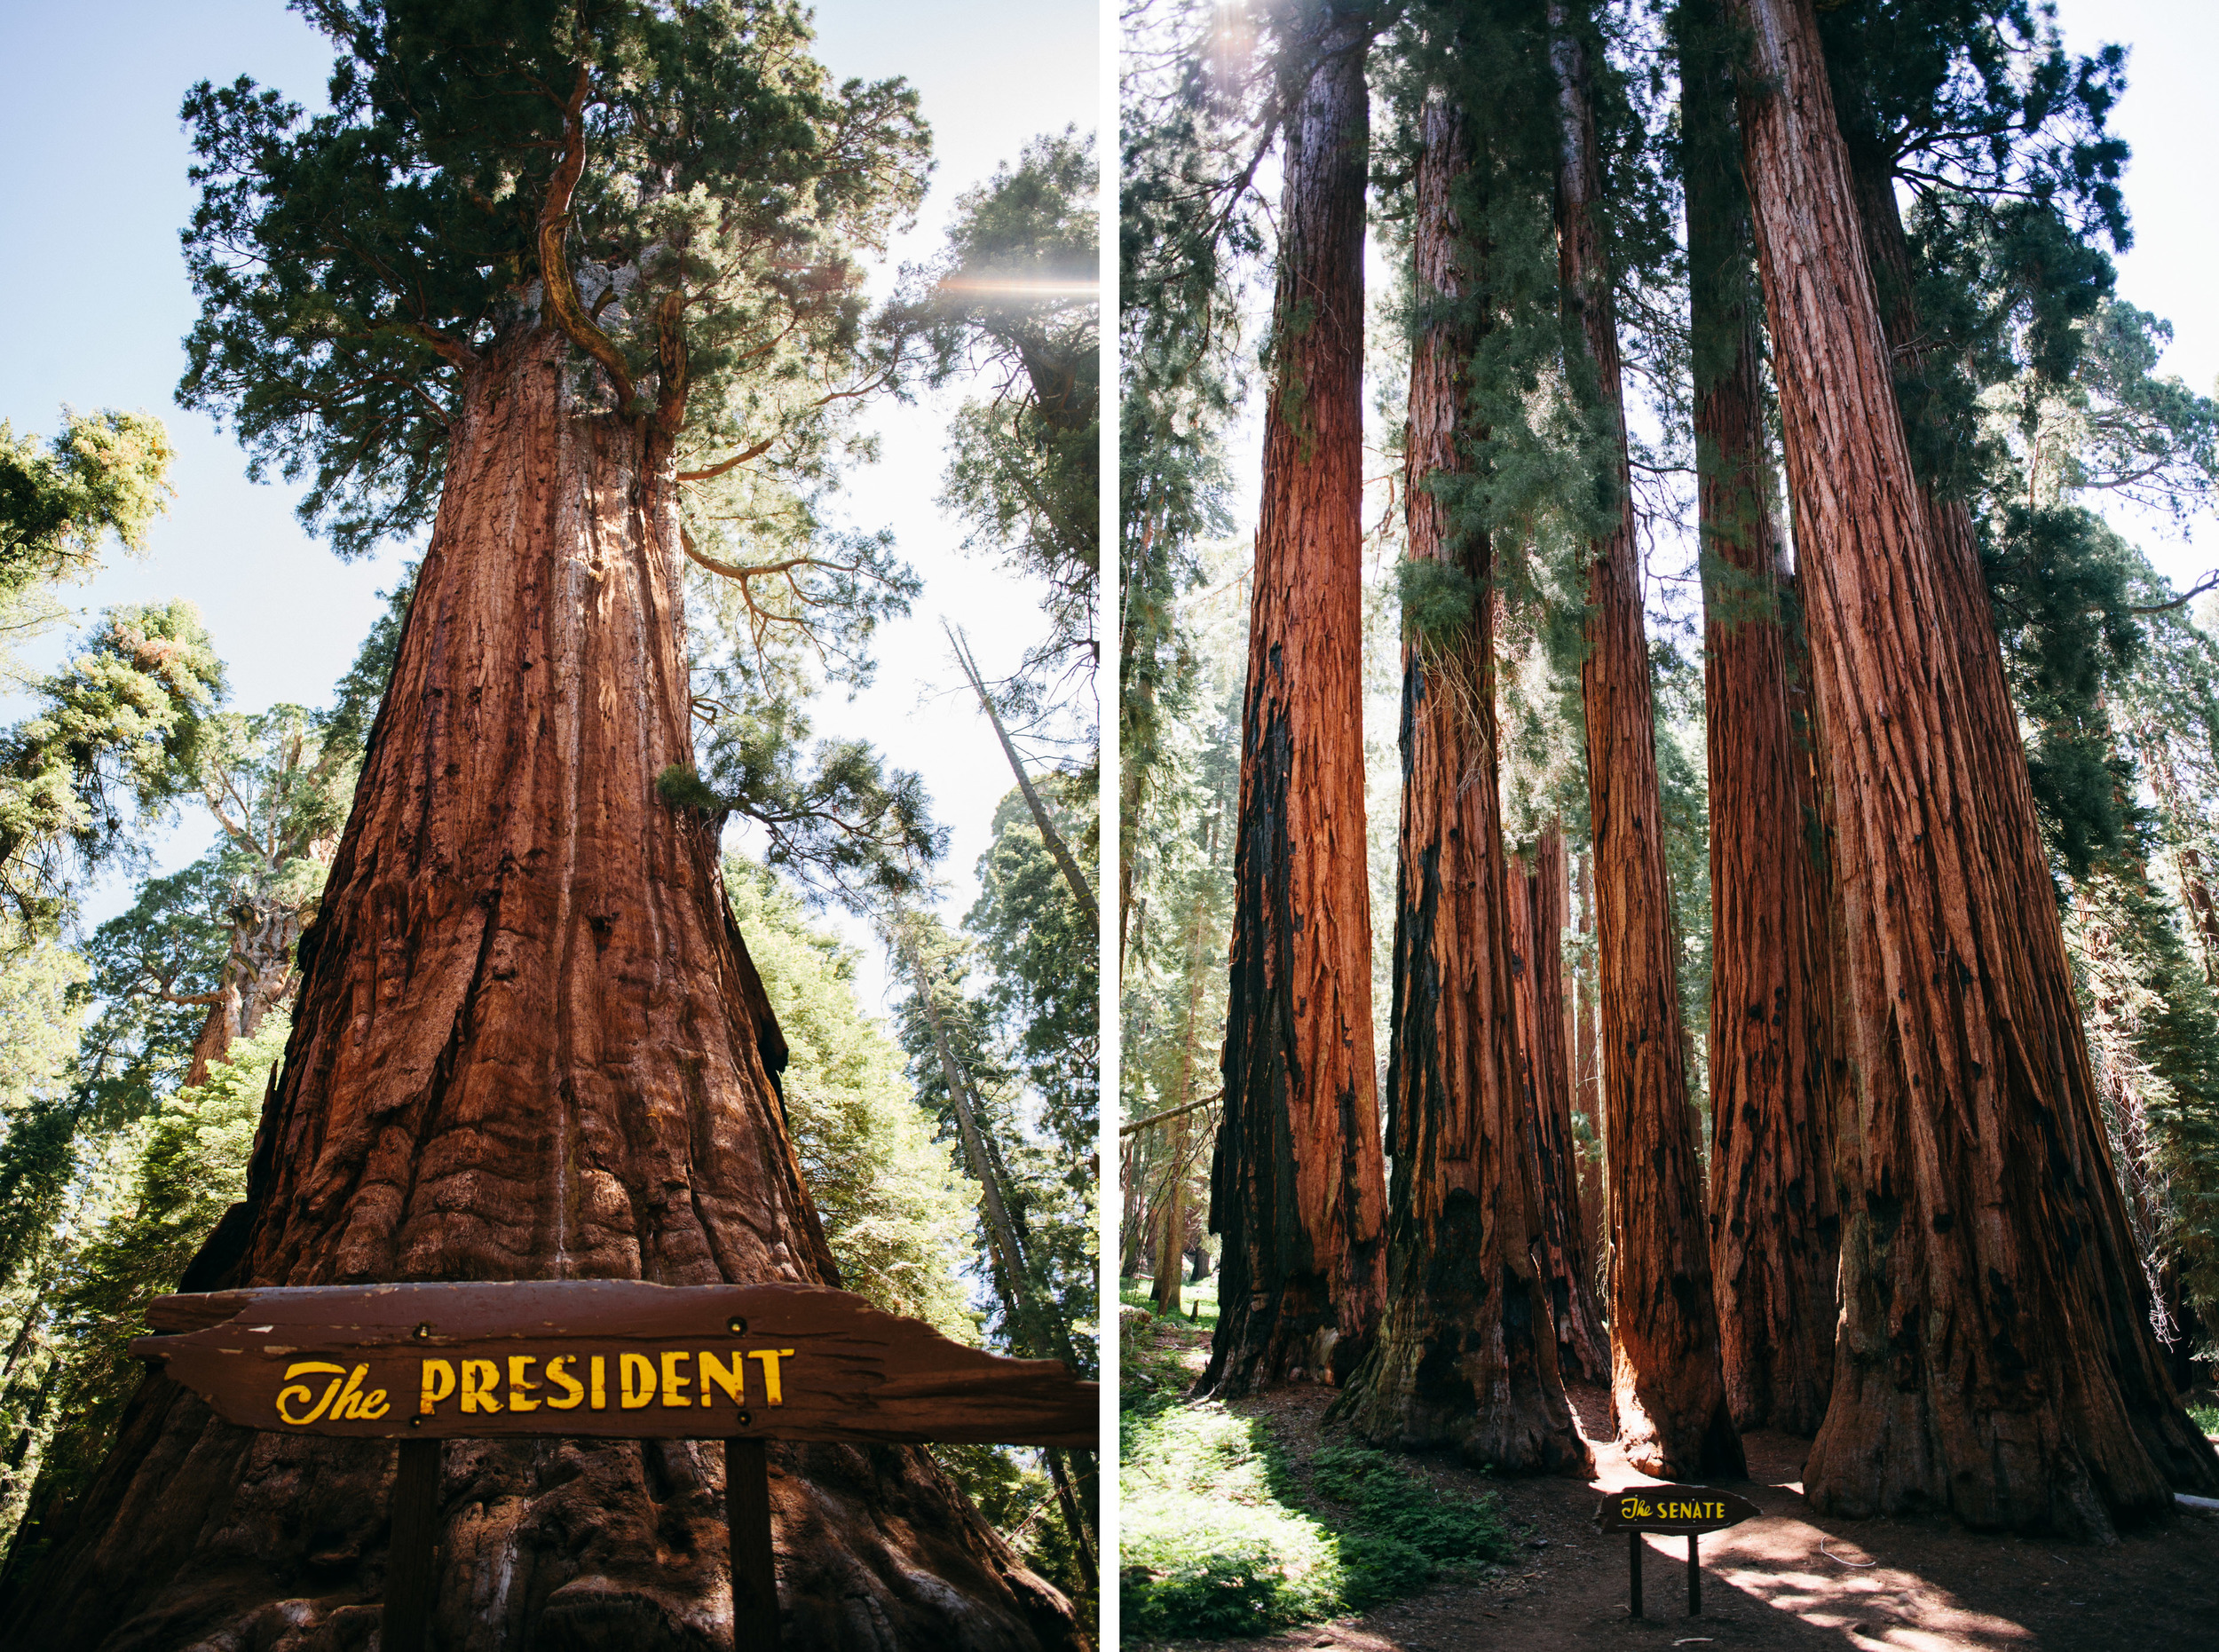 president senate sequoia trees.jpg